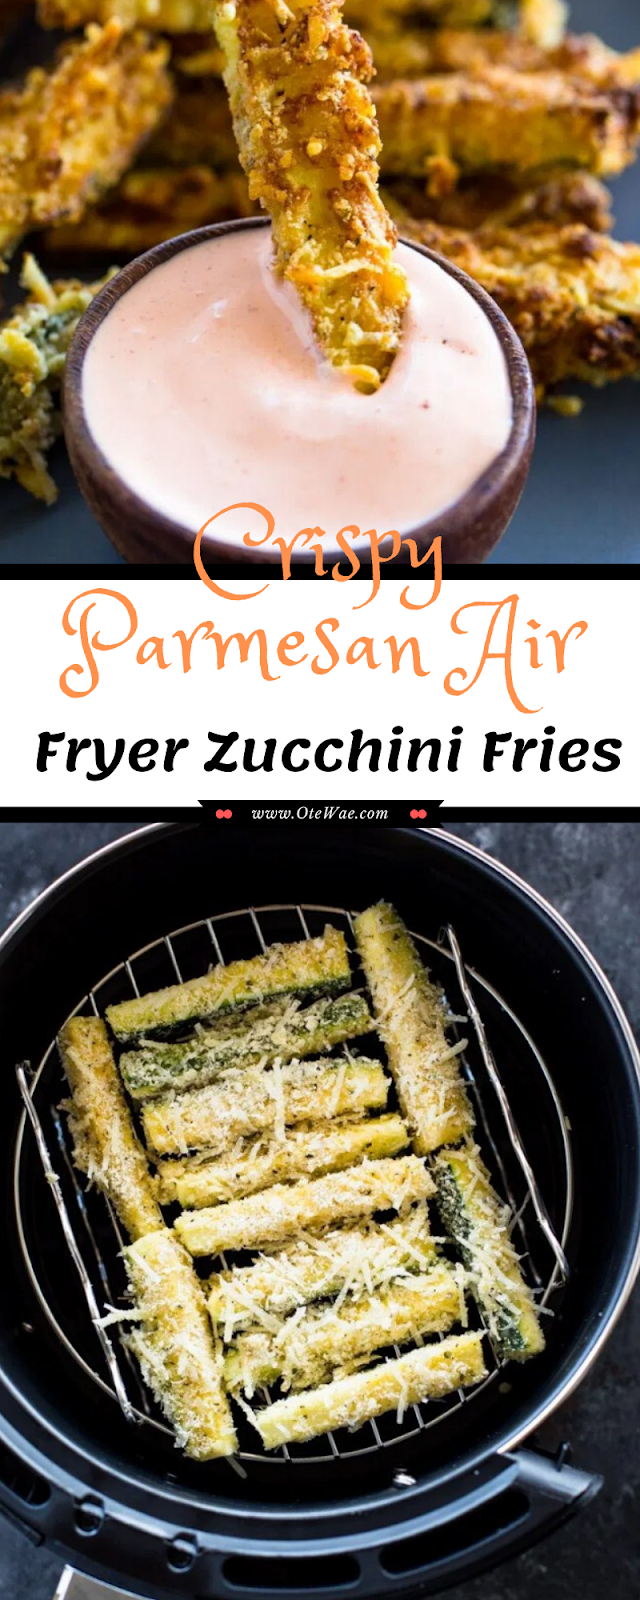 Crispy Parmesan Air Fryer Zucchini Fries